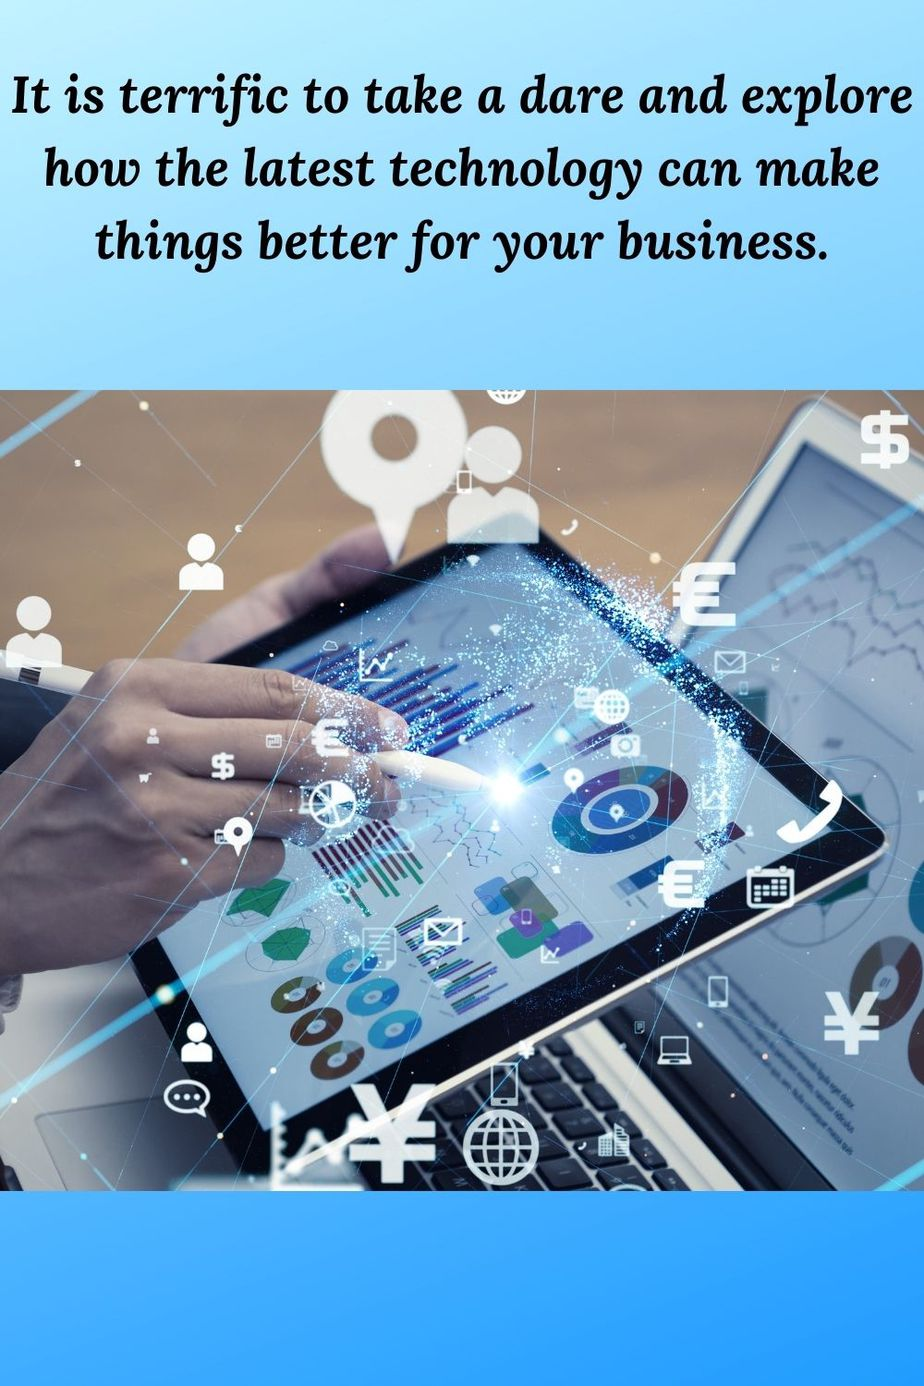 picture of woman using a tablet and the words It is terrific to take a dare and explore how the latest technology can make things better for your business.